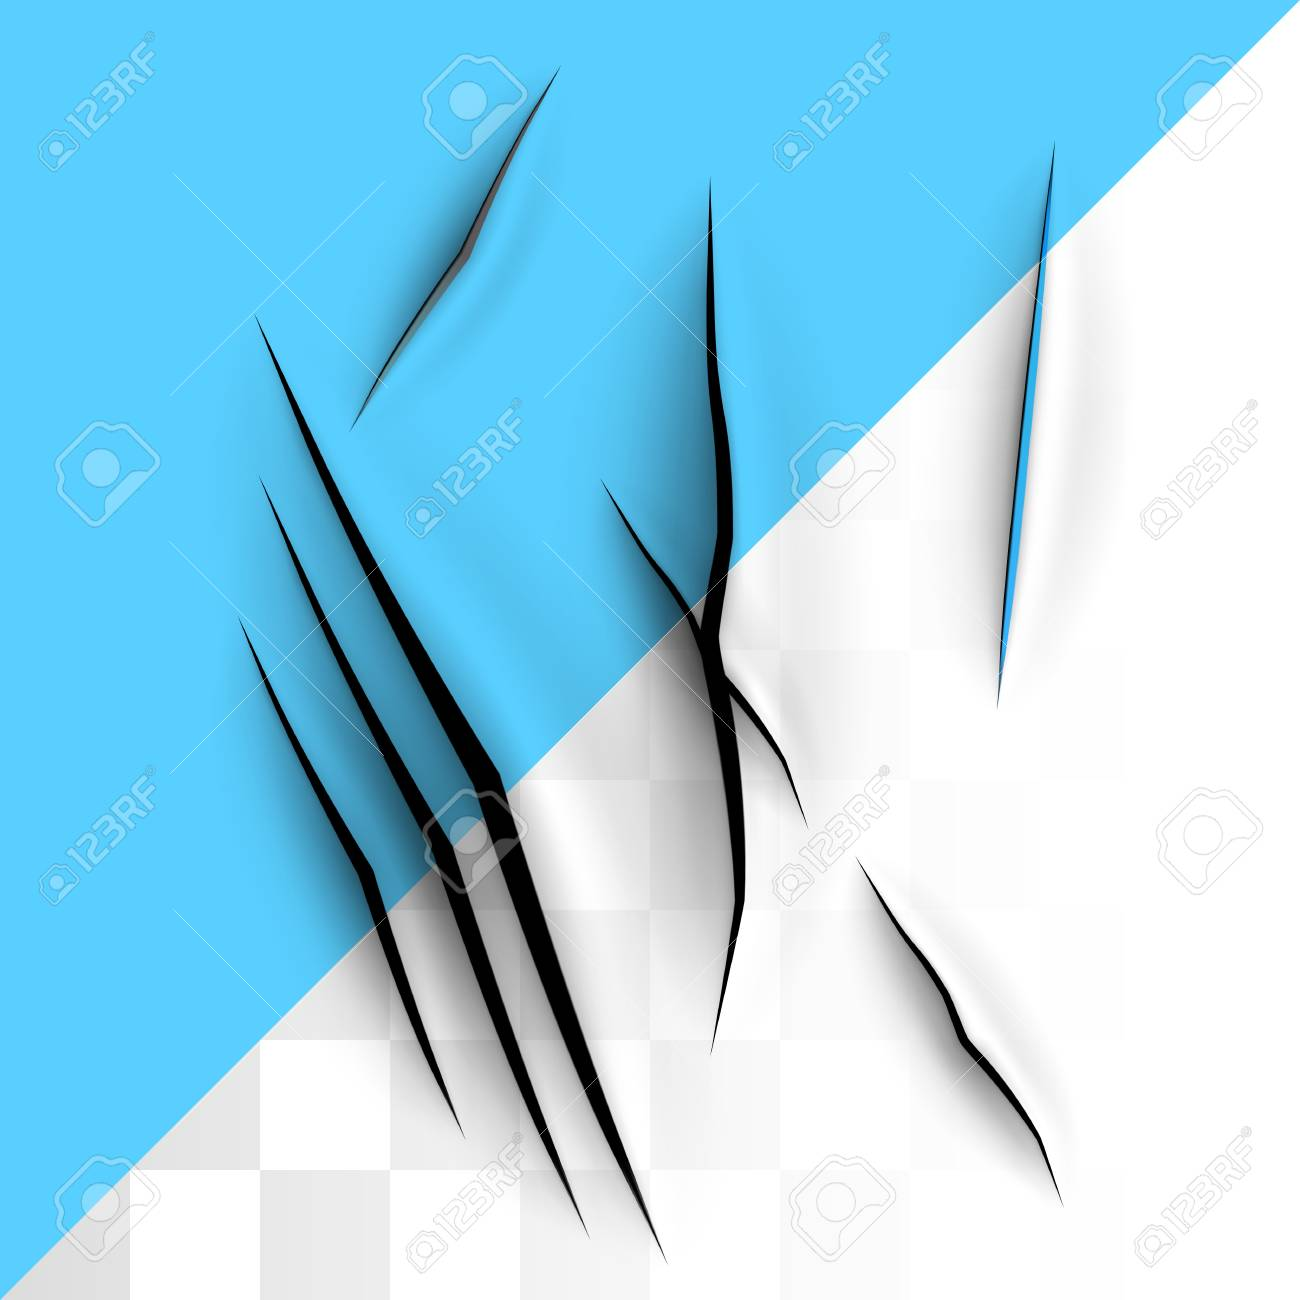 Big Blue Triangle Shape Placed In Corner Transparent Template With Slash Paper Cut Design